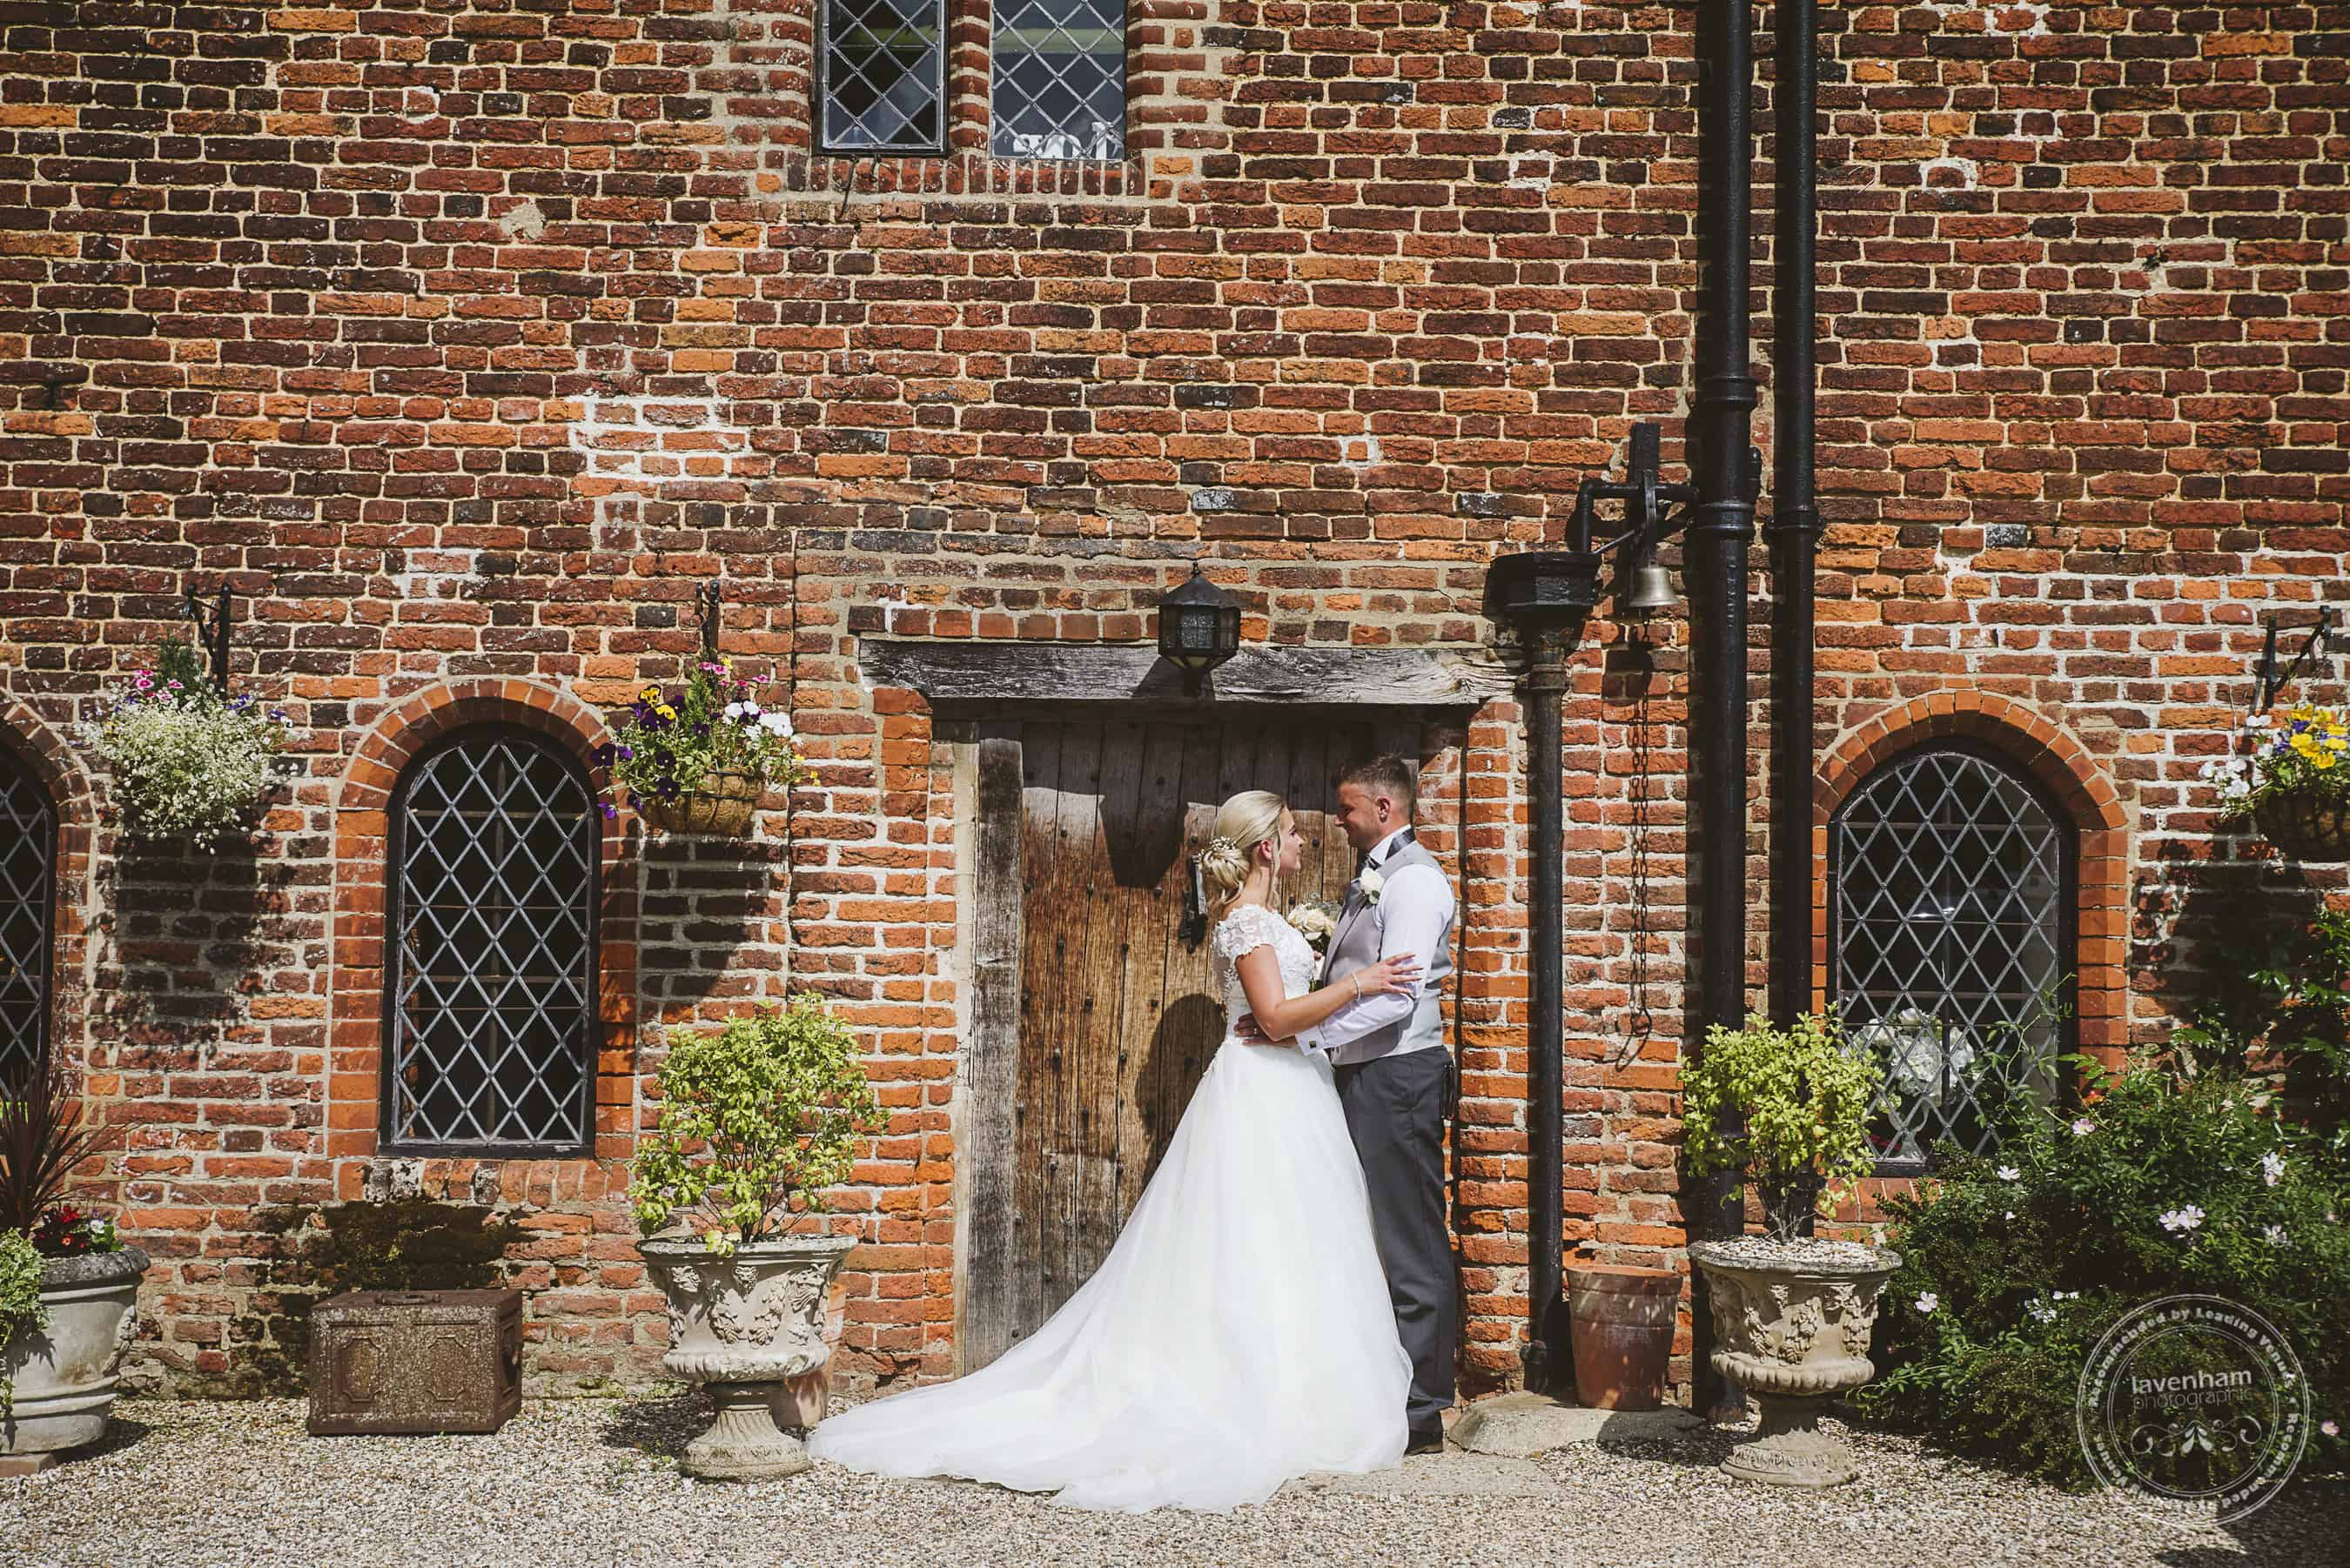 030618 Leez Priory Wedding Photography Lavenham Photographic 083